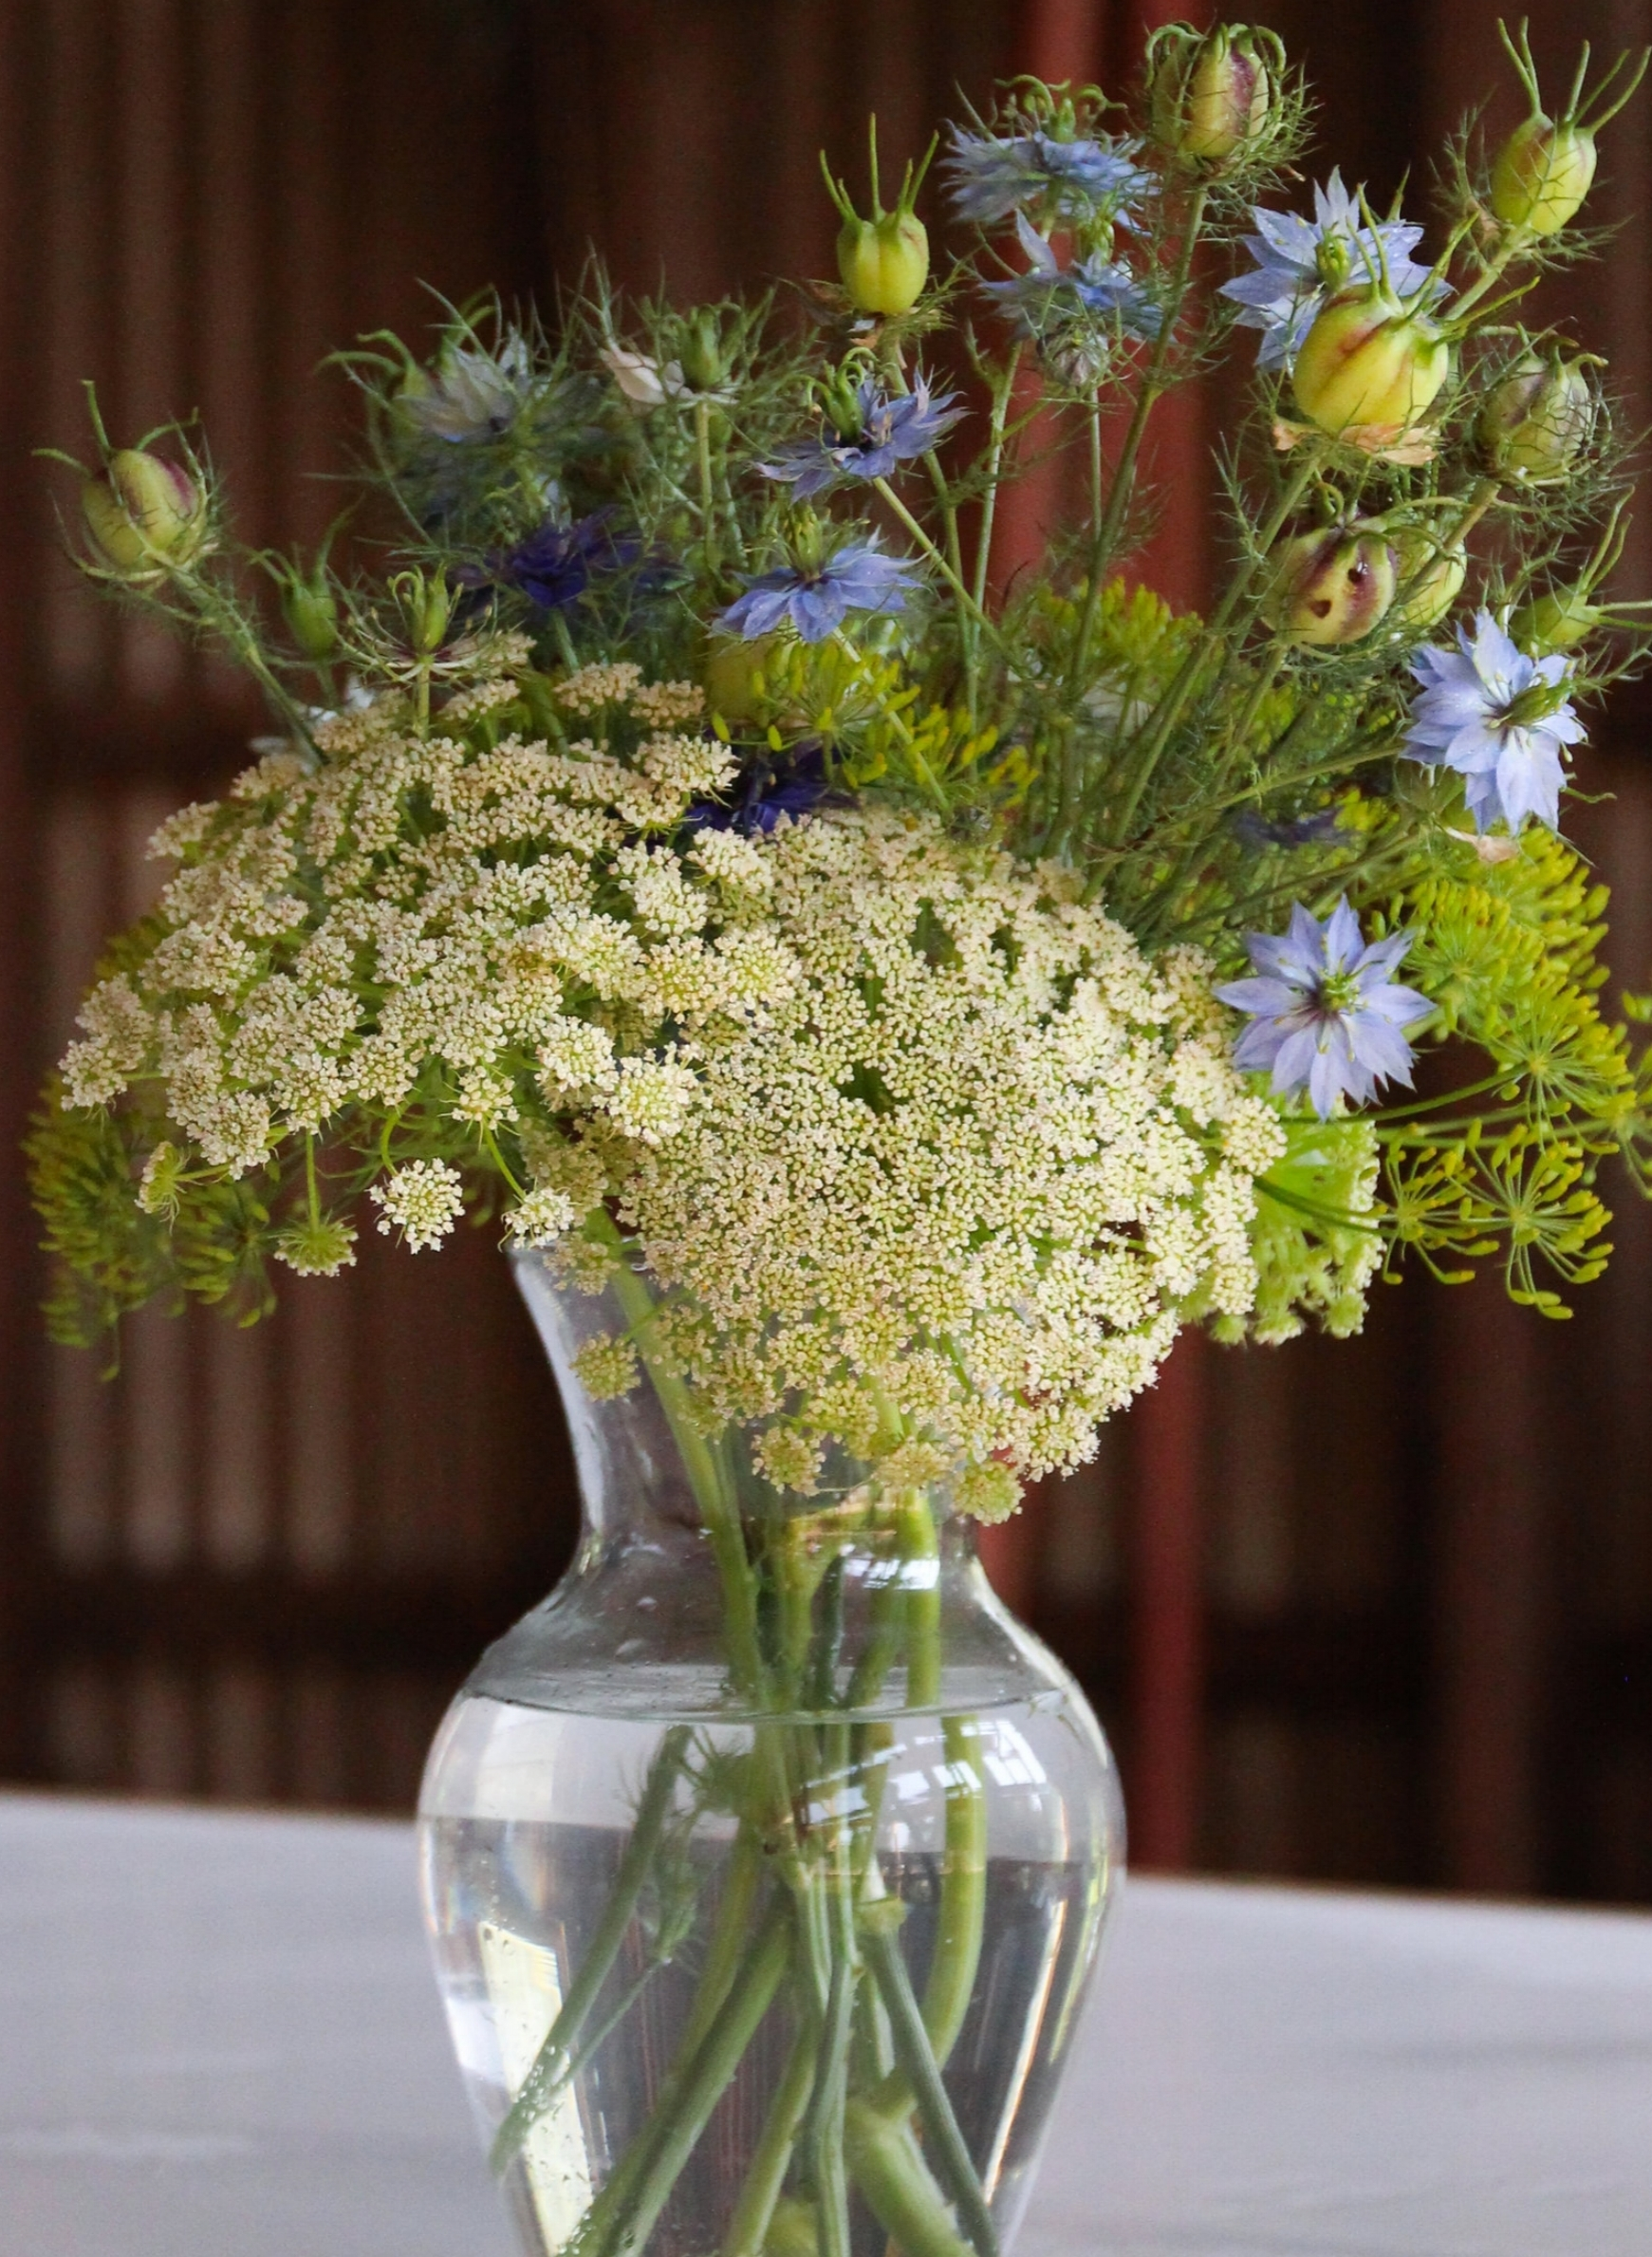 Celebrate the Seasons with Our Spring, Summer, and Fall Flower Subscition Plans  - Select one or more of our Subscription Plans and each weekend enjoy a delightful assortment of our colorful and fragrant flowers, farm grown and fresh cut. You may chose either a lush bouquet that we arrange for you or a bunch of the same blooms ready for you to style to your liking. Your flowers may be picked up at our farm, 1110 Terry Lane in Orient, on Fridays from 10 tp 6 or Saturdays from 10 to 4. For a small charge we will deliver to your home in Orient, East Marion, Green Port or Southold Hamlet. You need not be present for the delivery as we can leave your flowers on a covered porch, deck or other sheltered place.